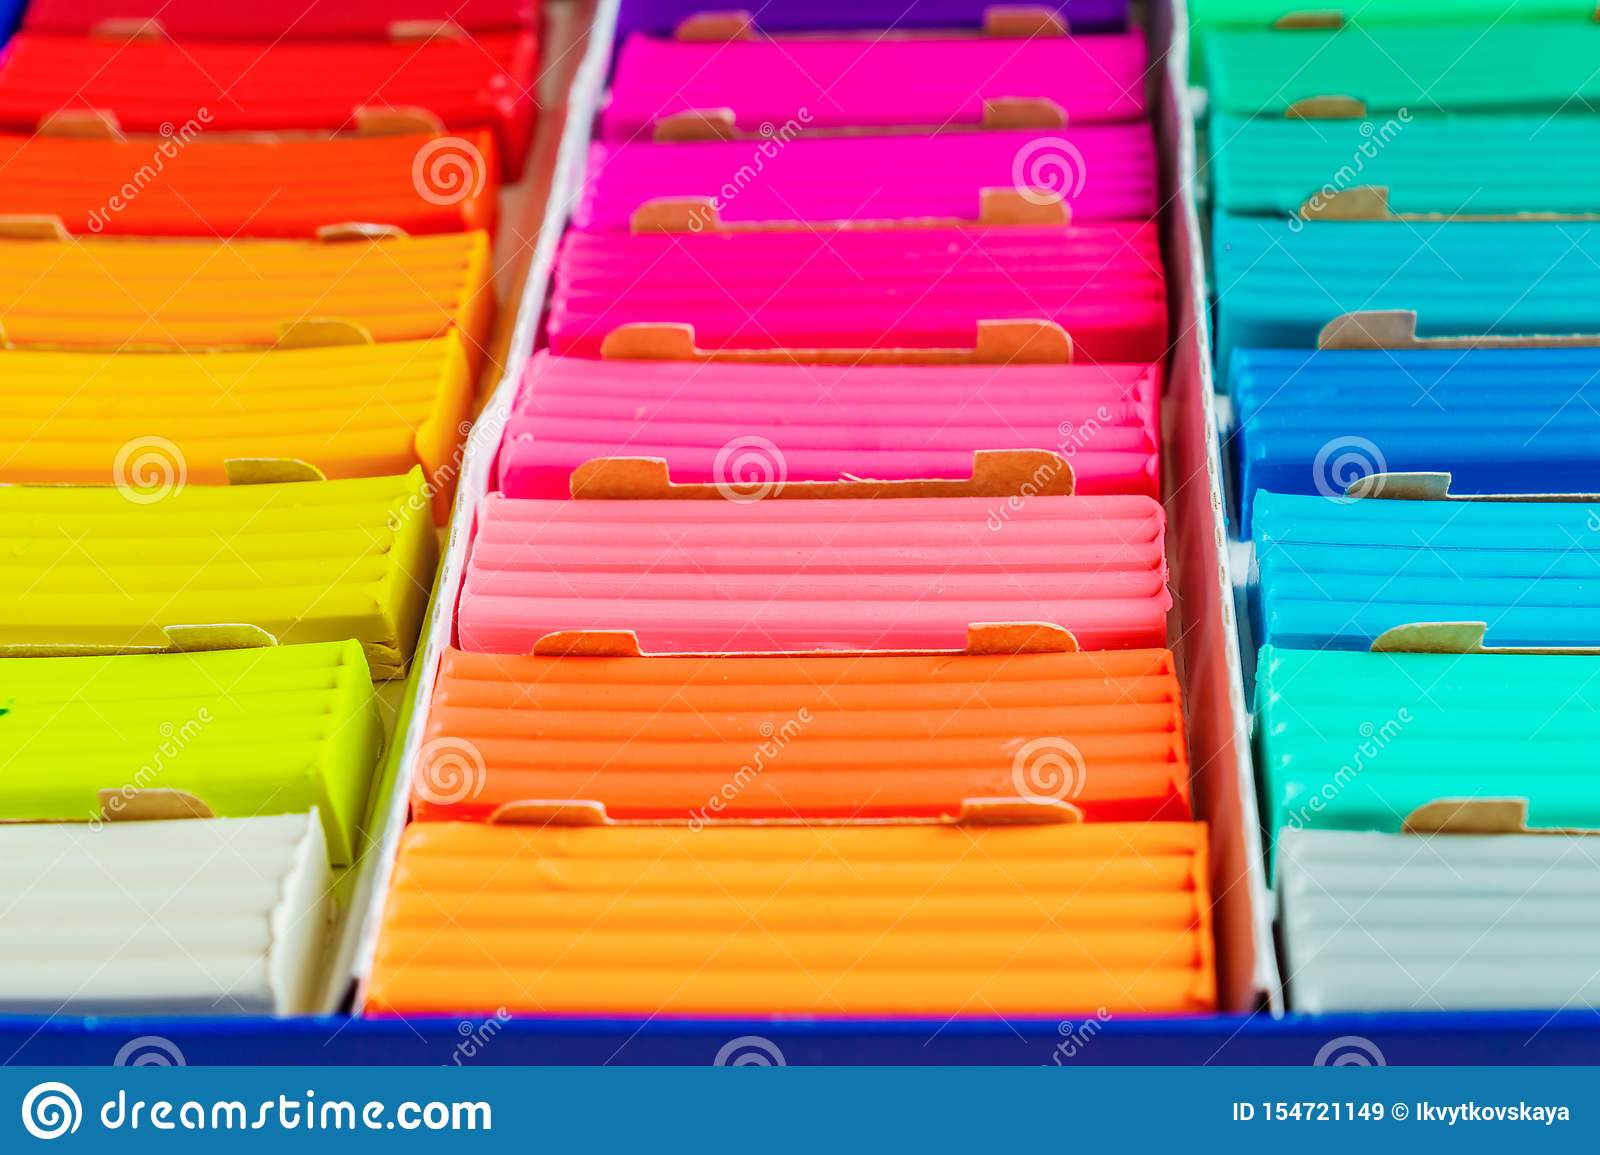 Rainbow colors of modeling clay. Multicolored plasticine bars ina box, background texture